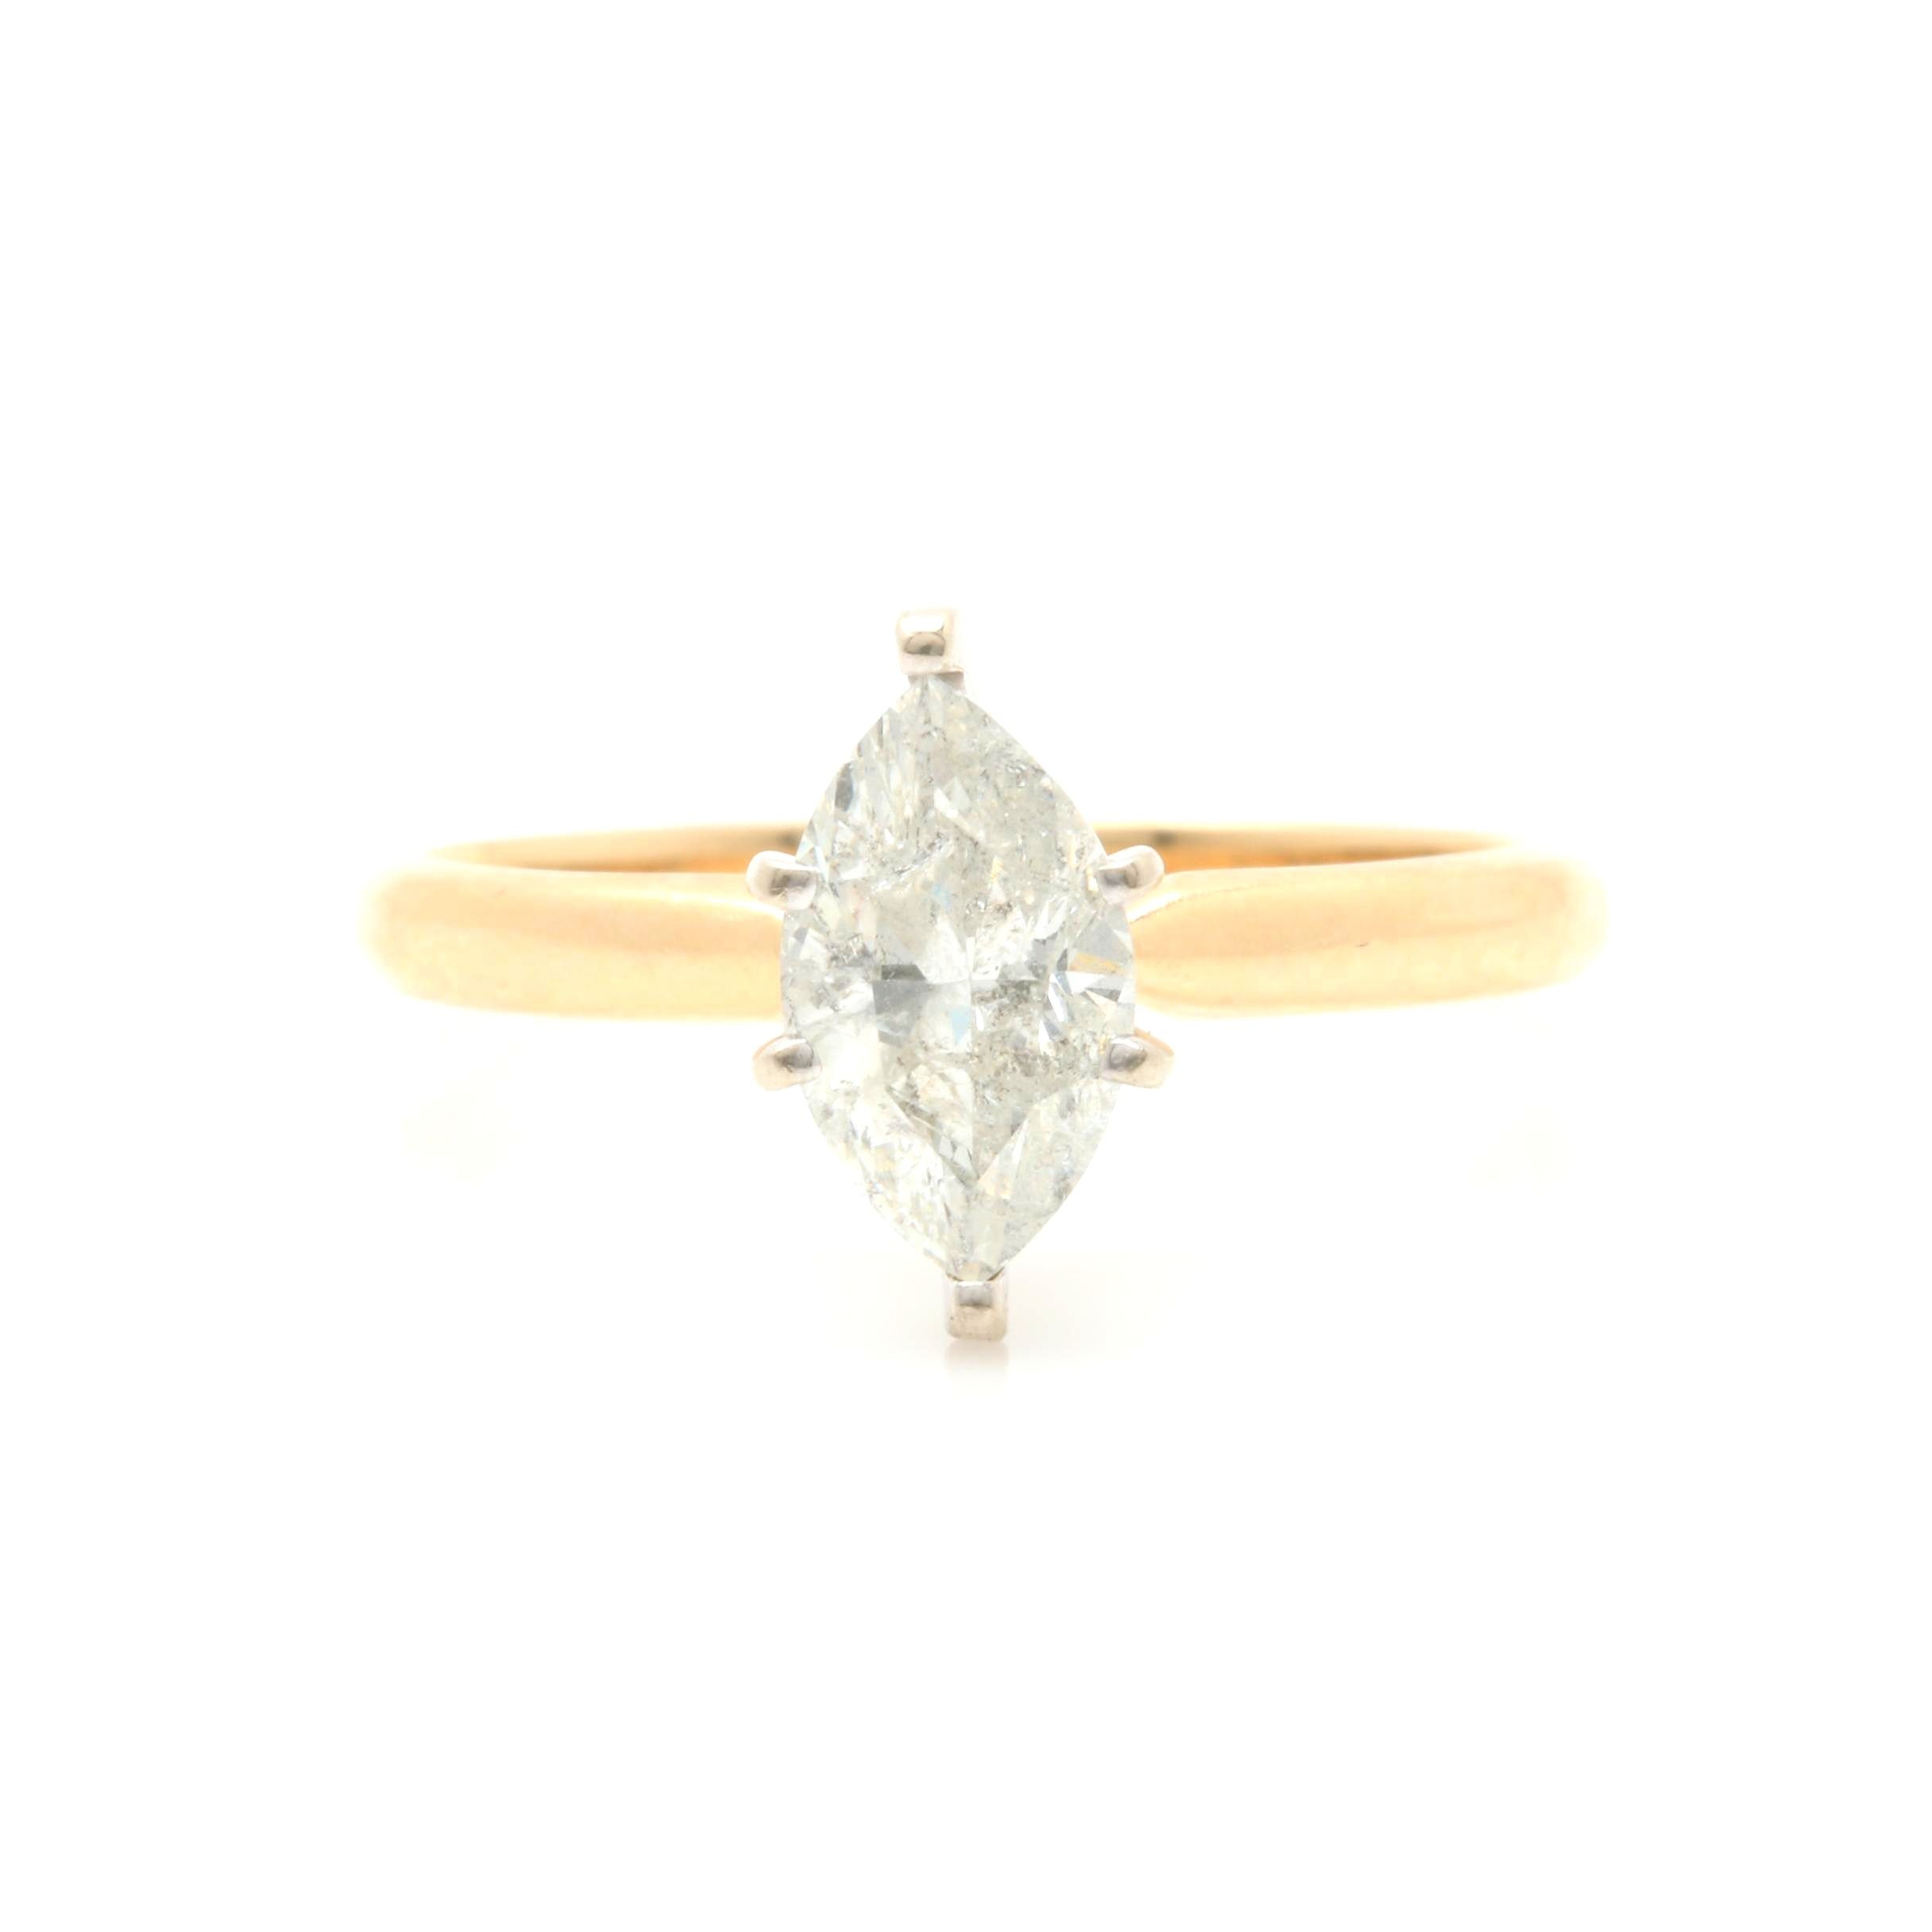 14K Yellow Gold 1.00 CT Diamond Solitaire Ring